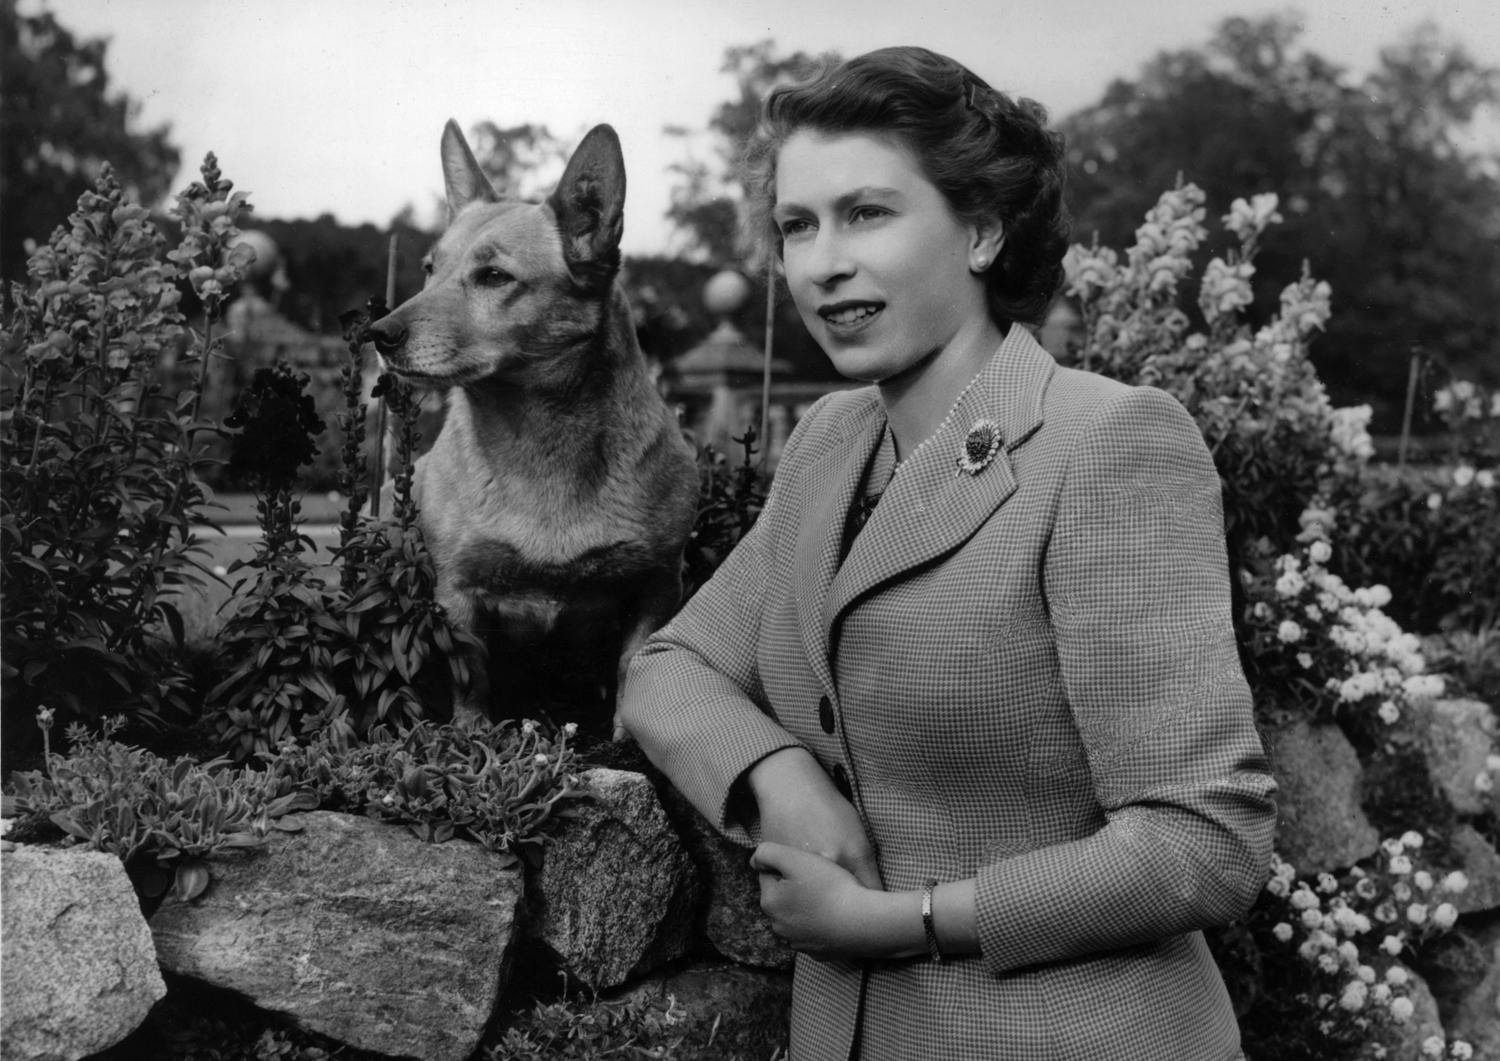 Queen Elizabeth II at Balmoral Castle with one of her Corgis